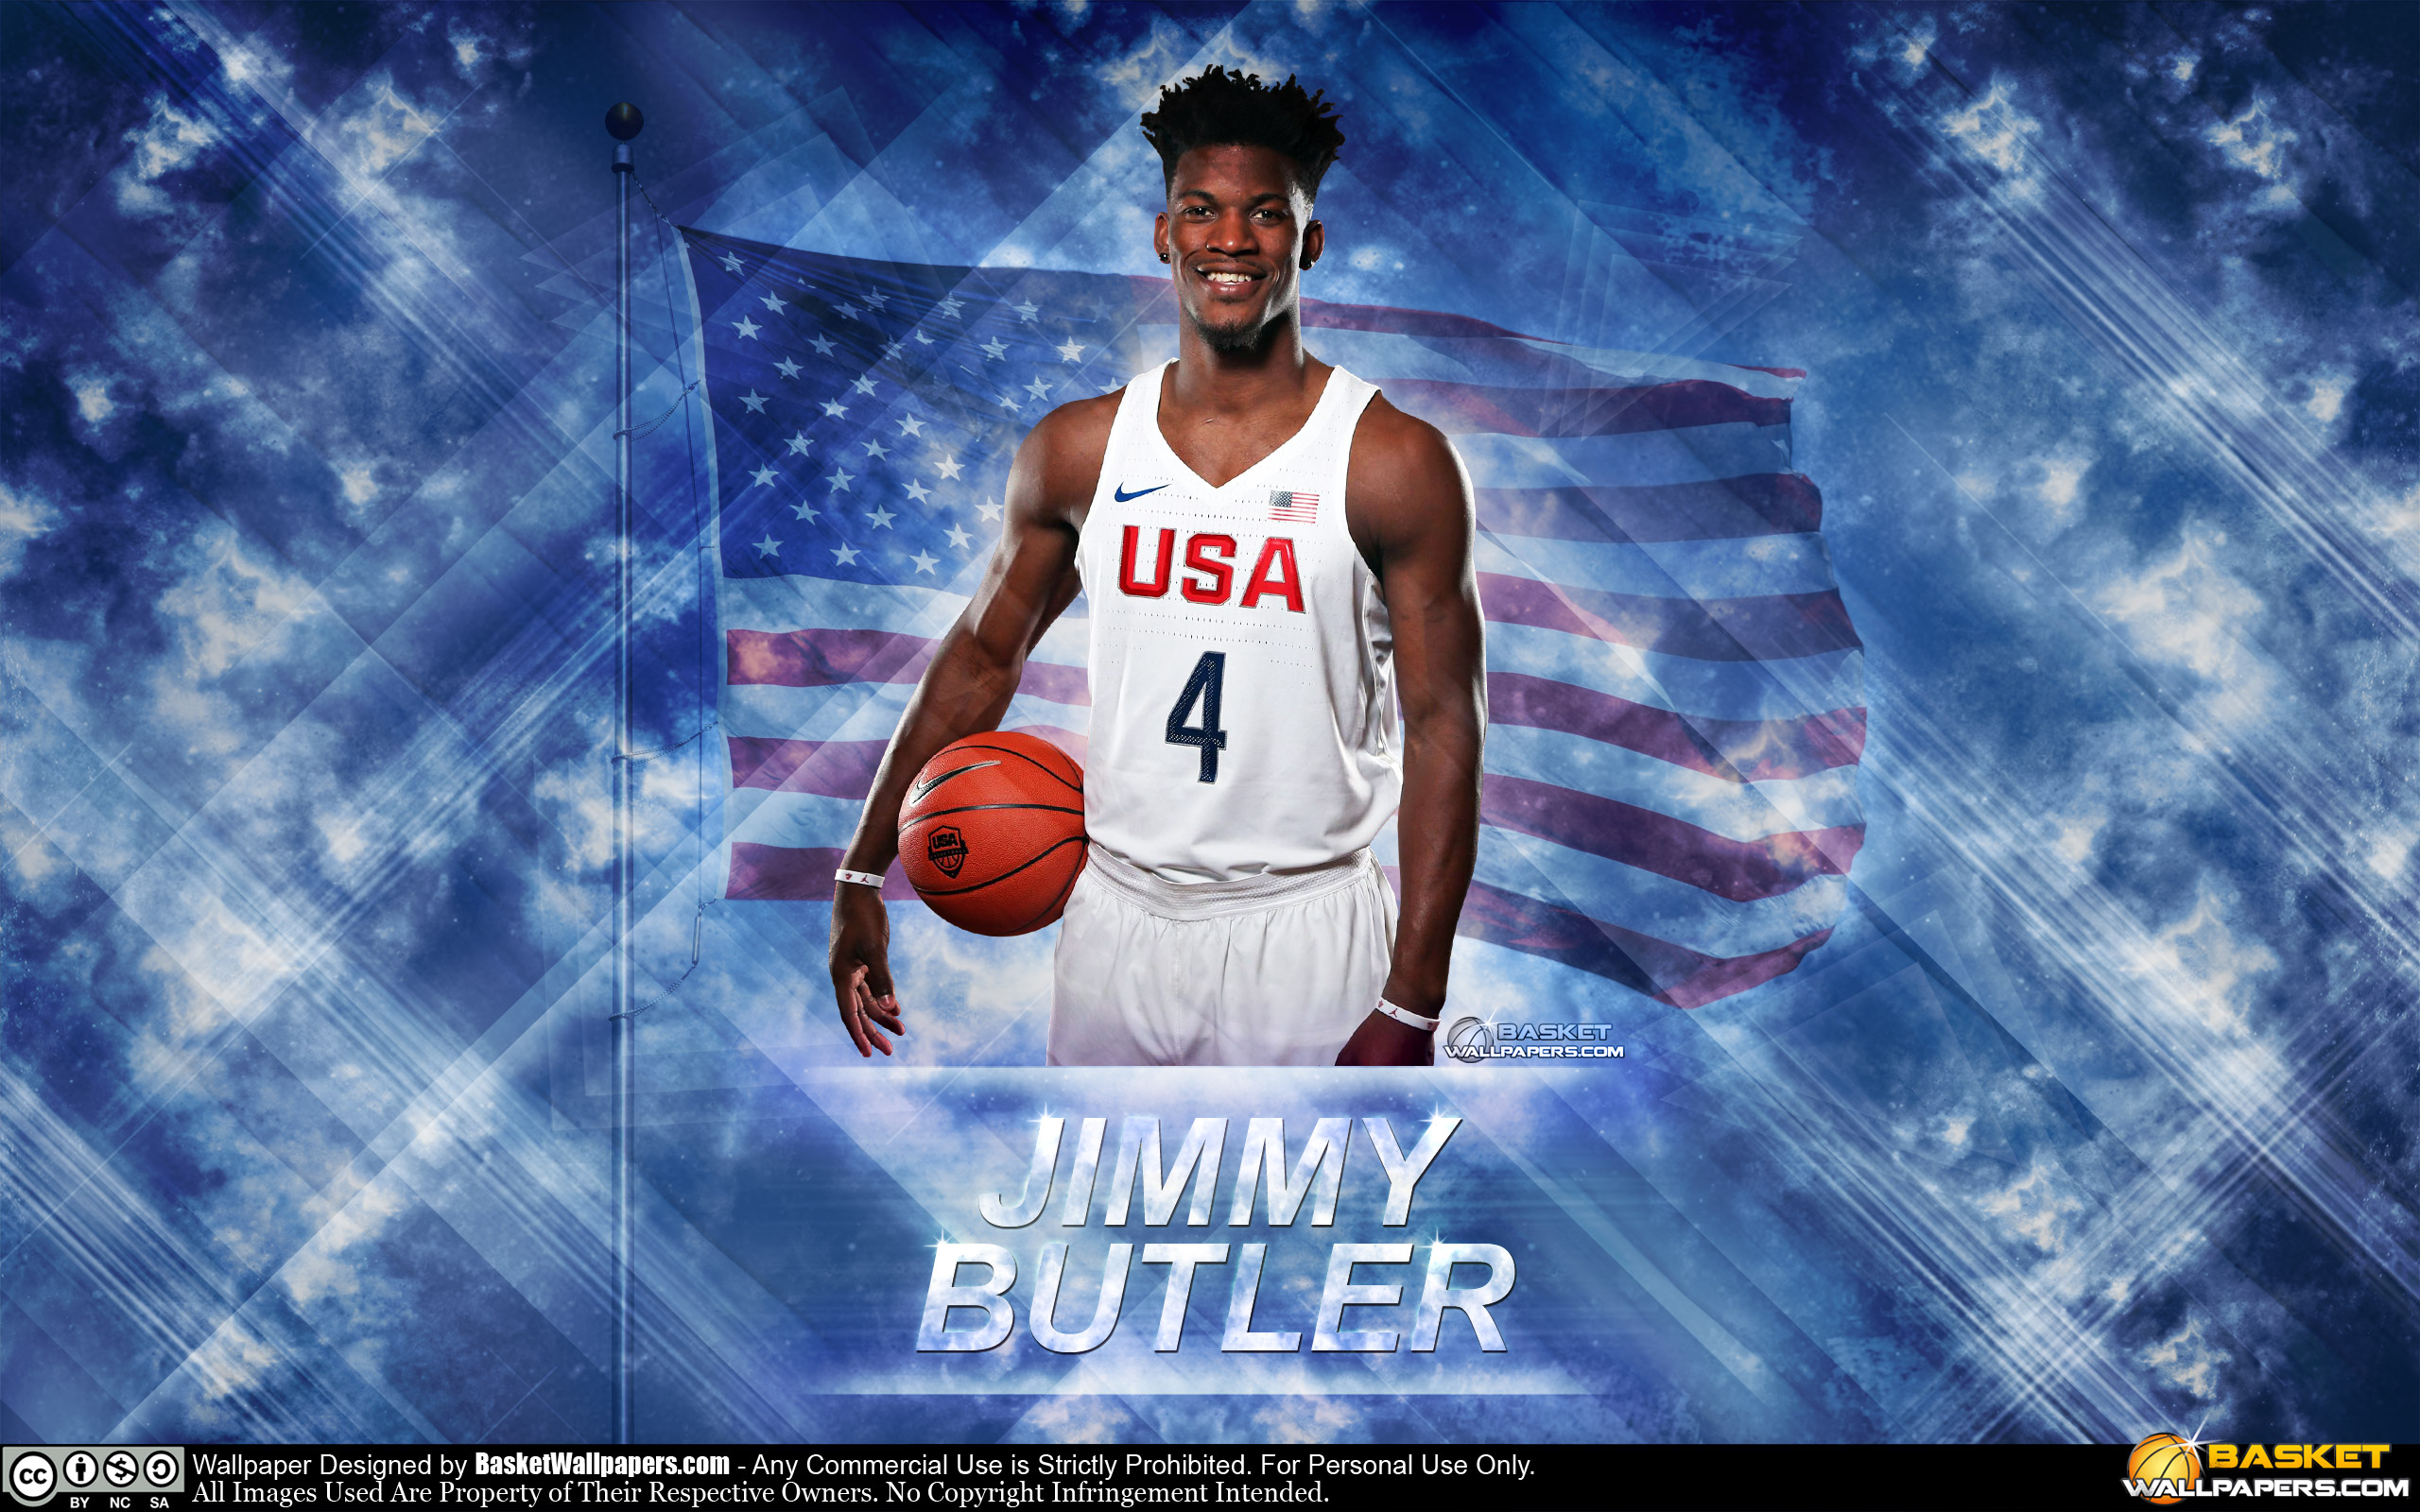 Jimmy Butler USA 2016 Olympics Wallpaper | Basketball ...